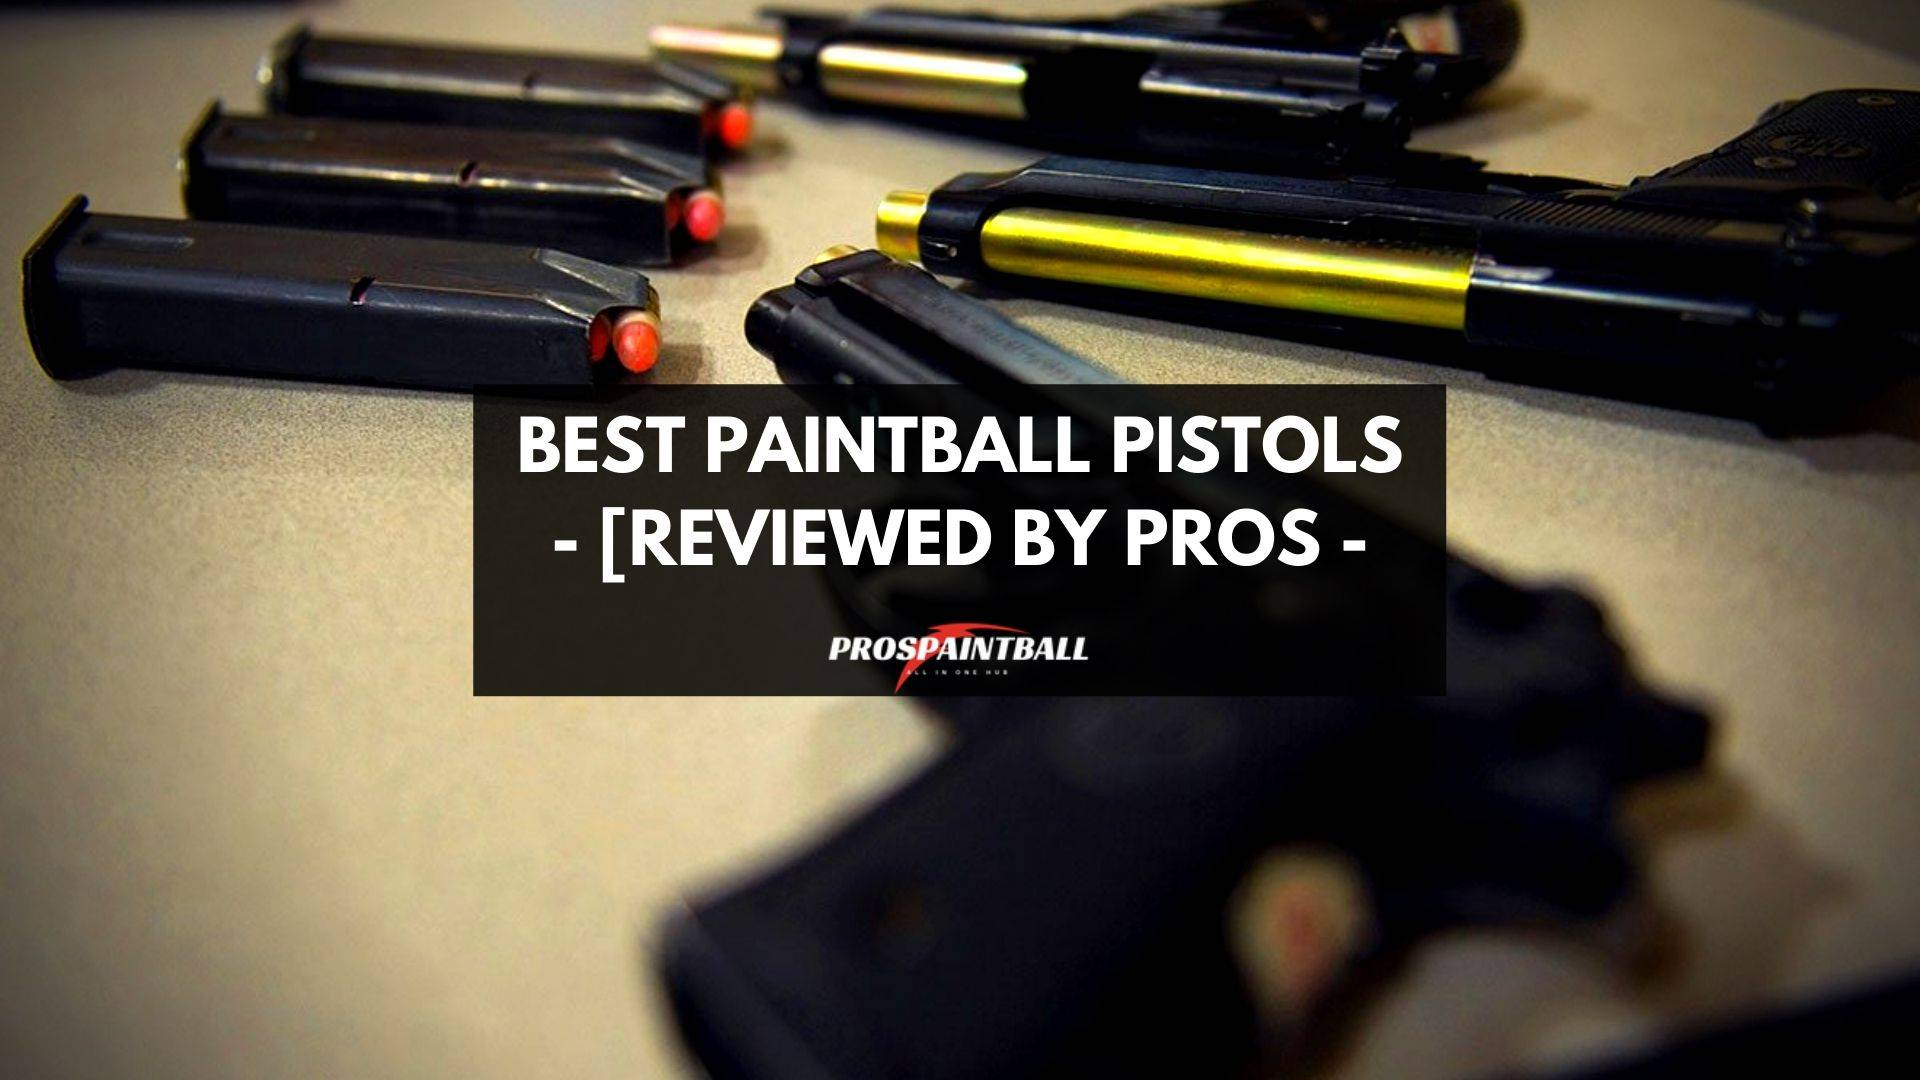 Best Paintball Pistols - Thumbnail